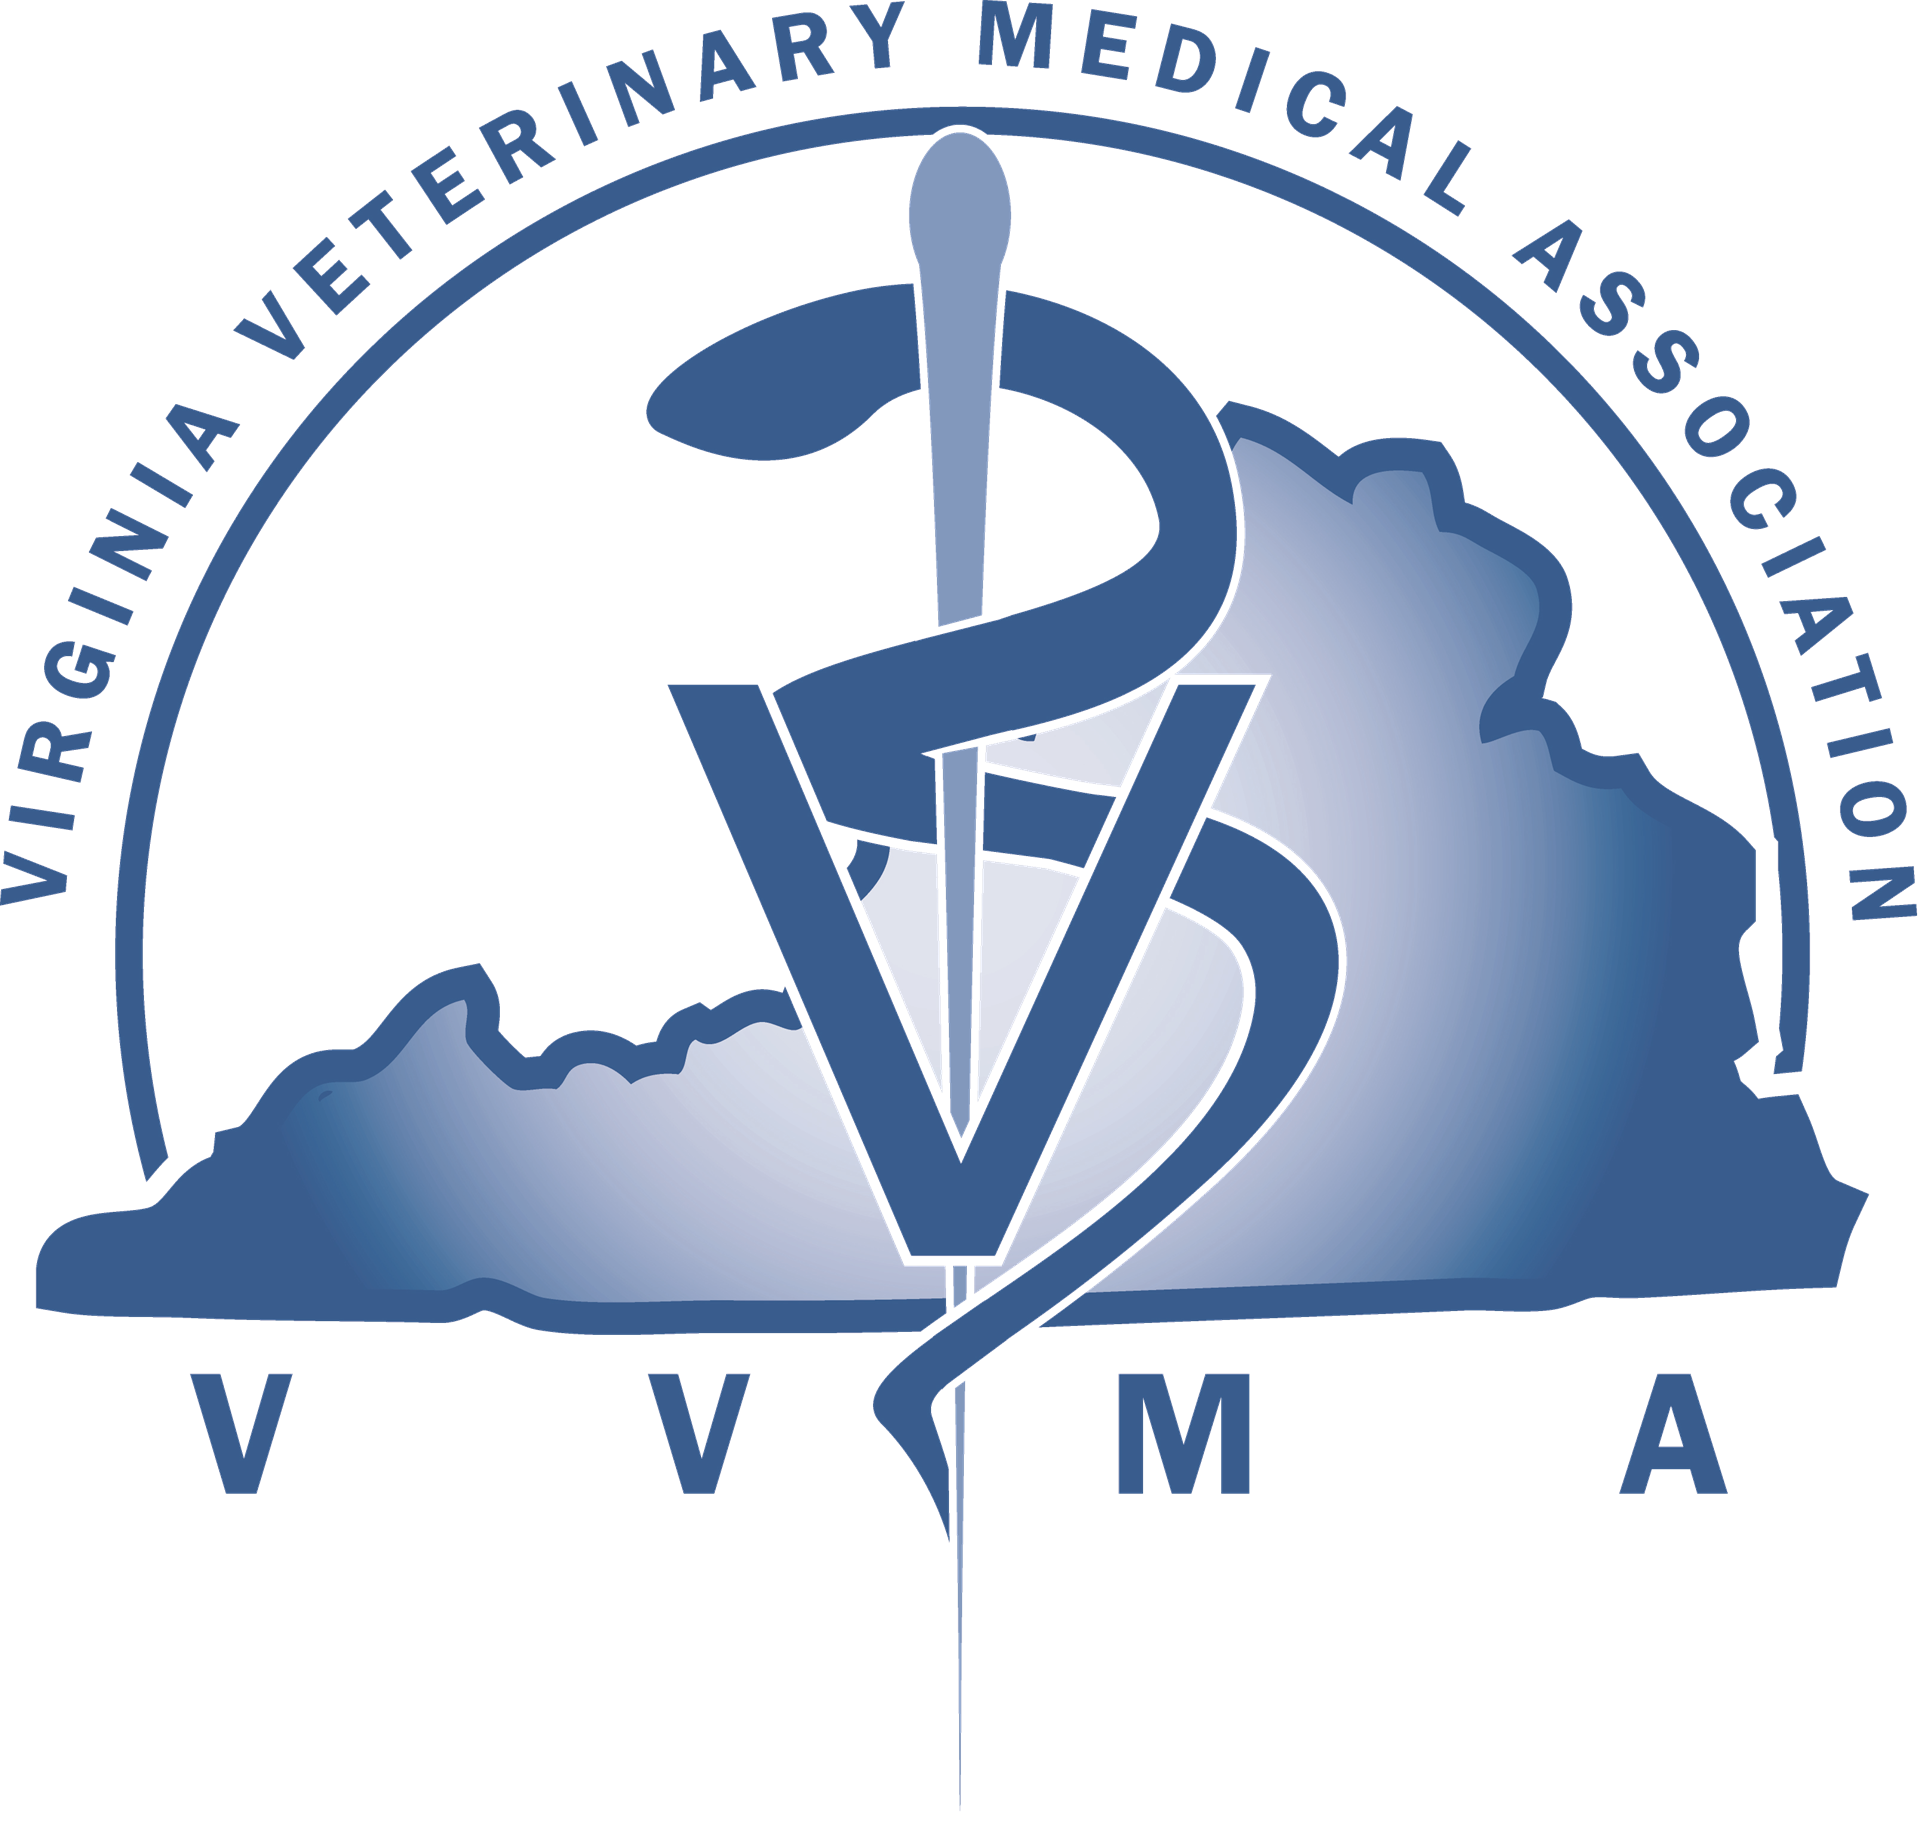 Learn more about the Virginia Veterinary Medical Association